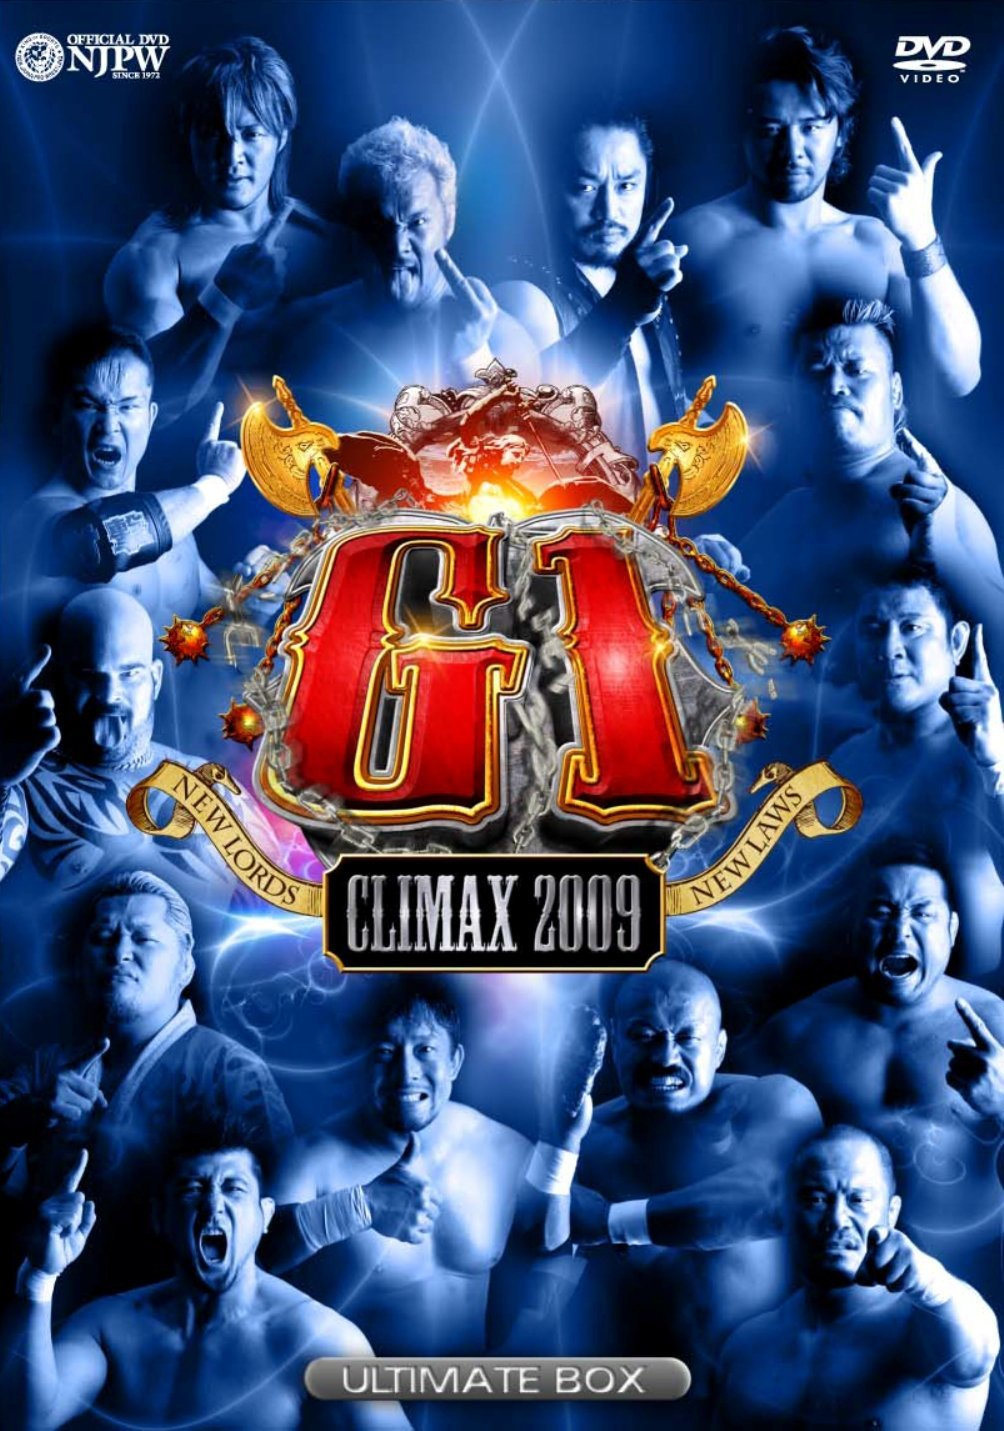 G1 CLIMAX 2009 ULTIMATE BOX